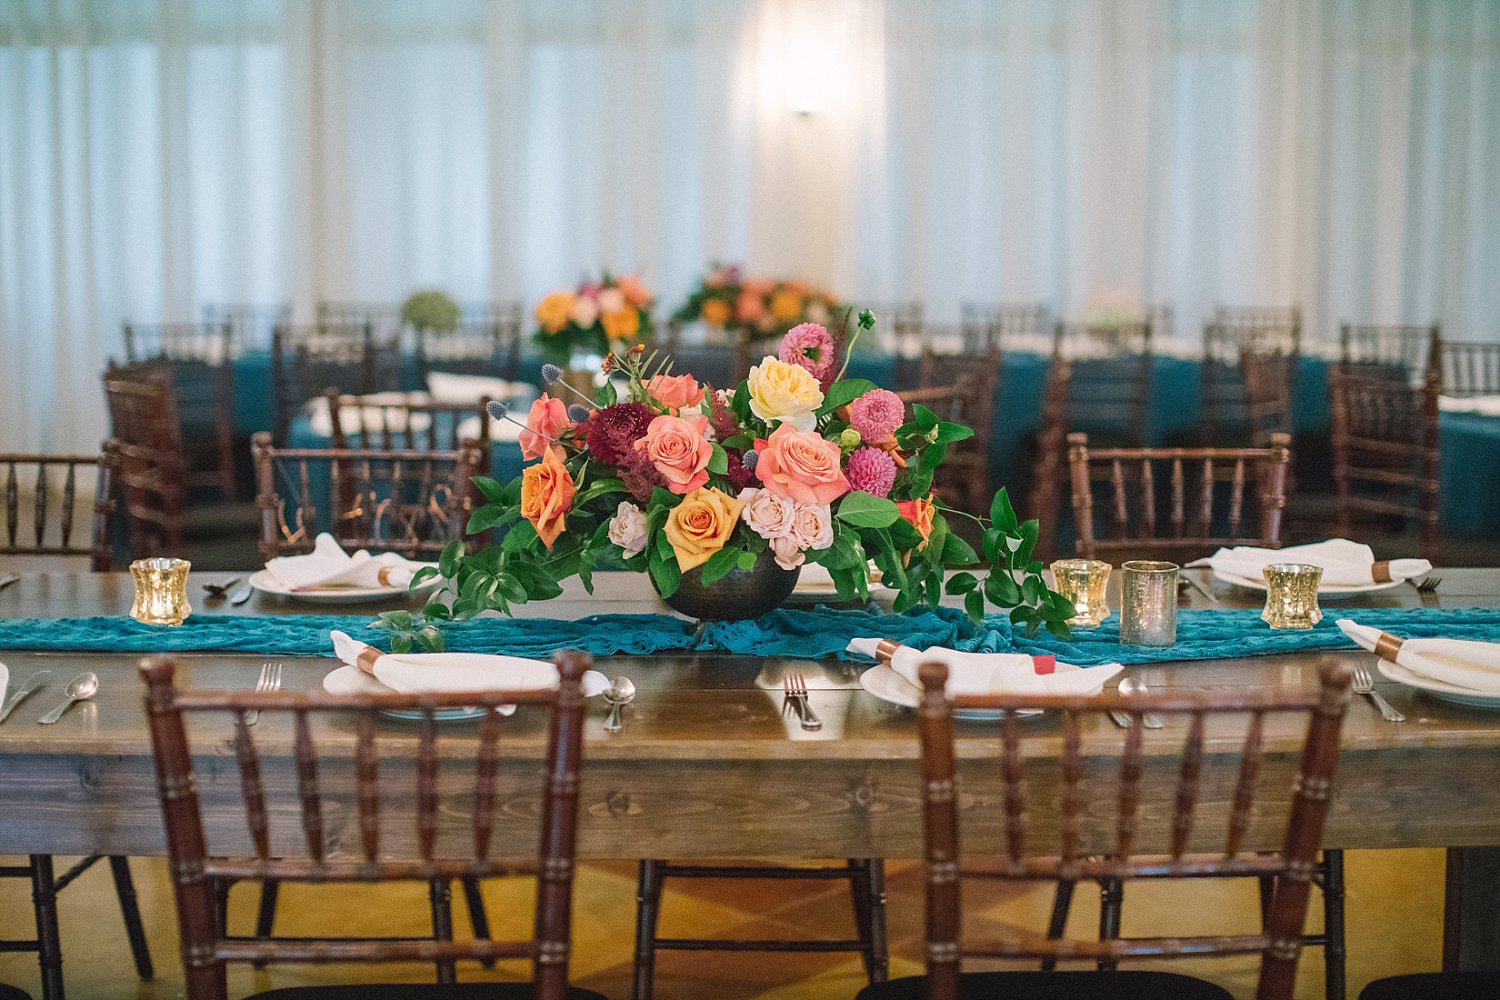 Farm table with a teal runner and colorful fall flowers